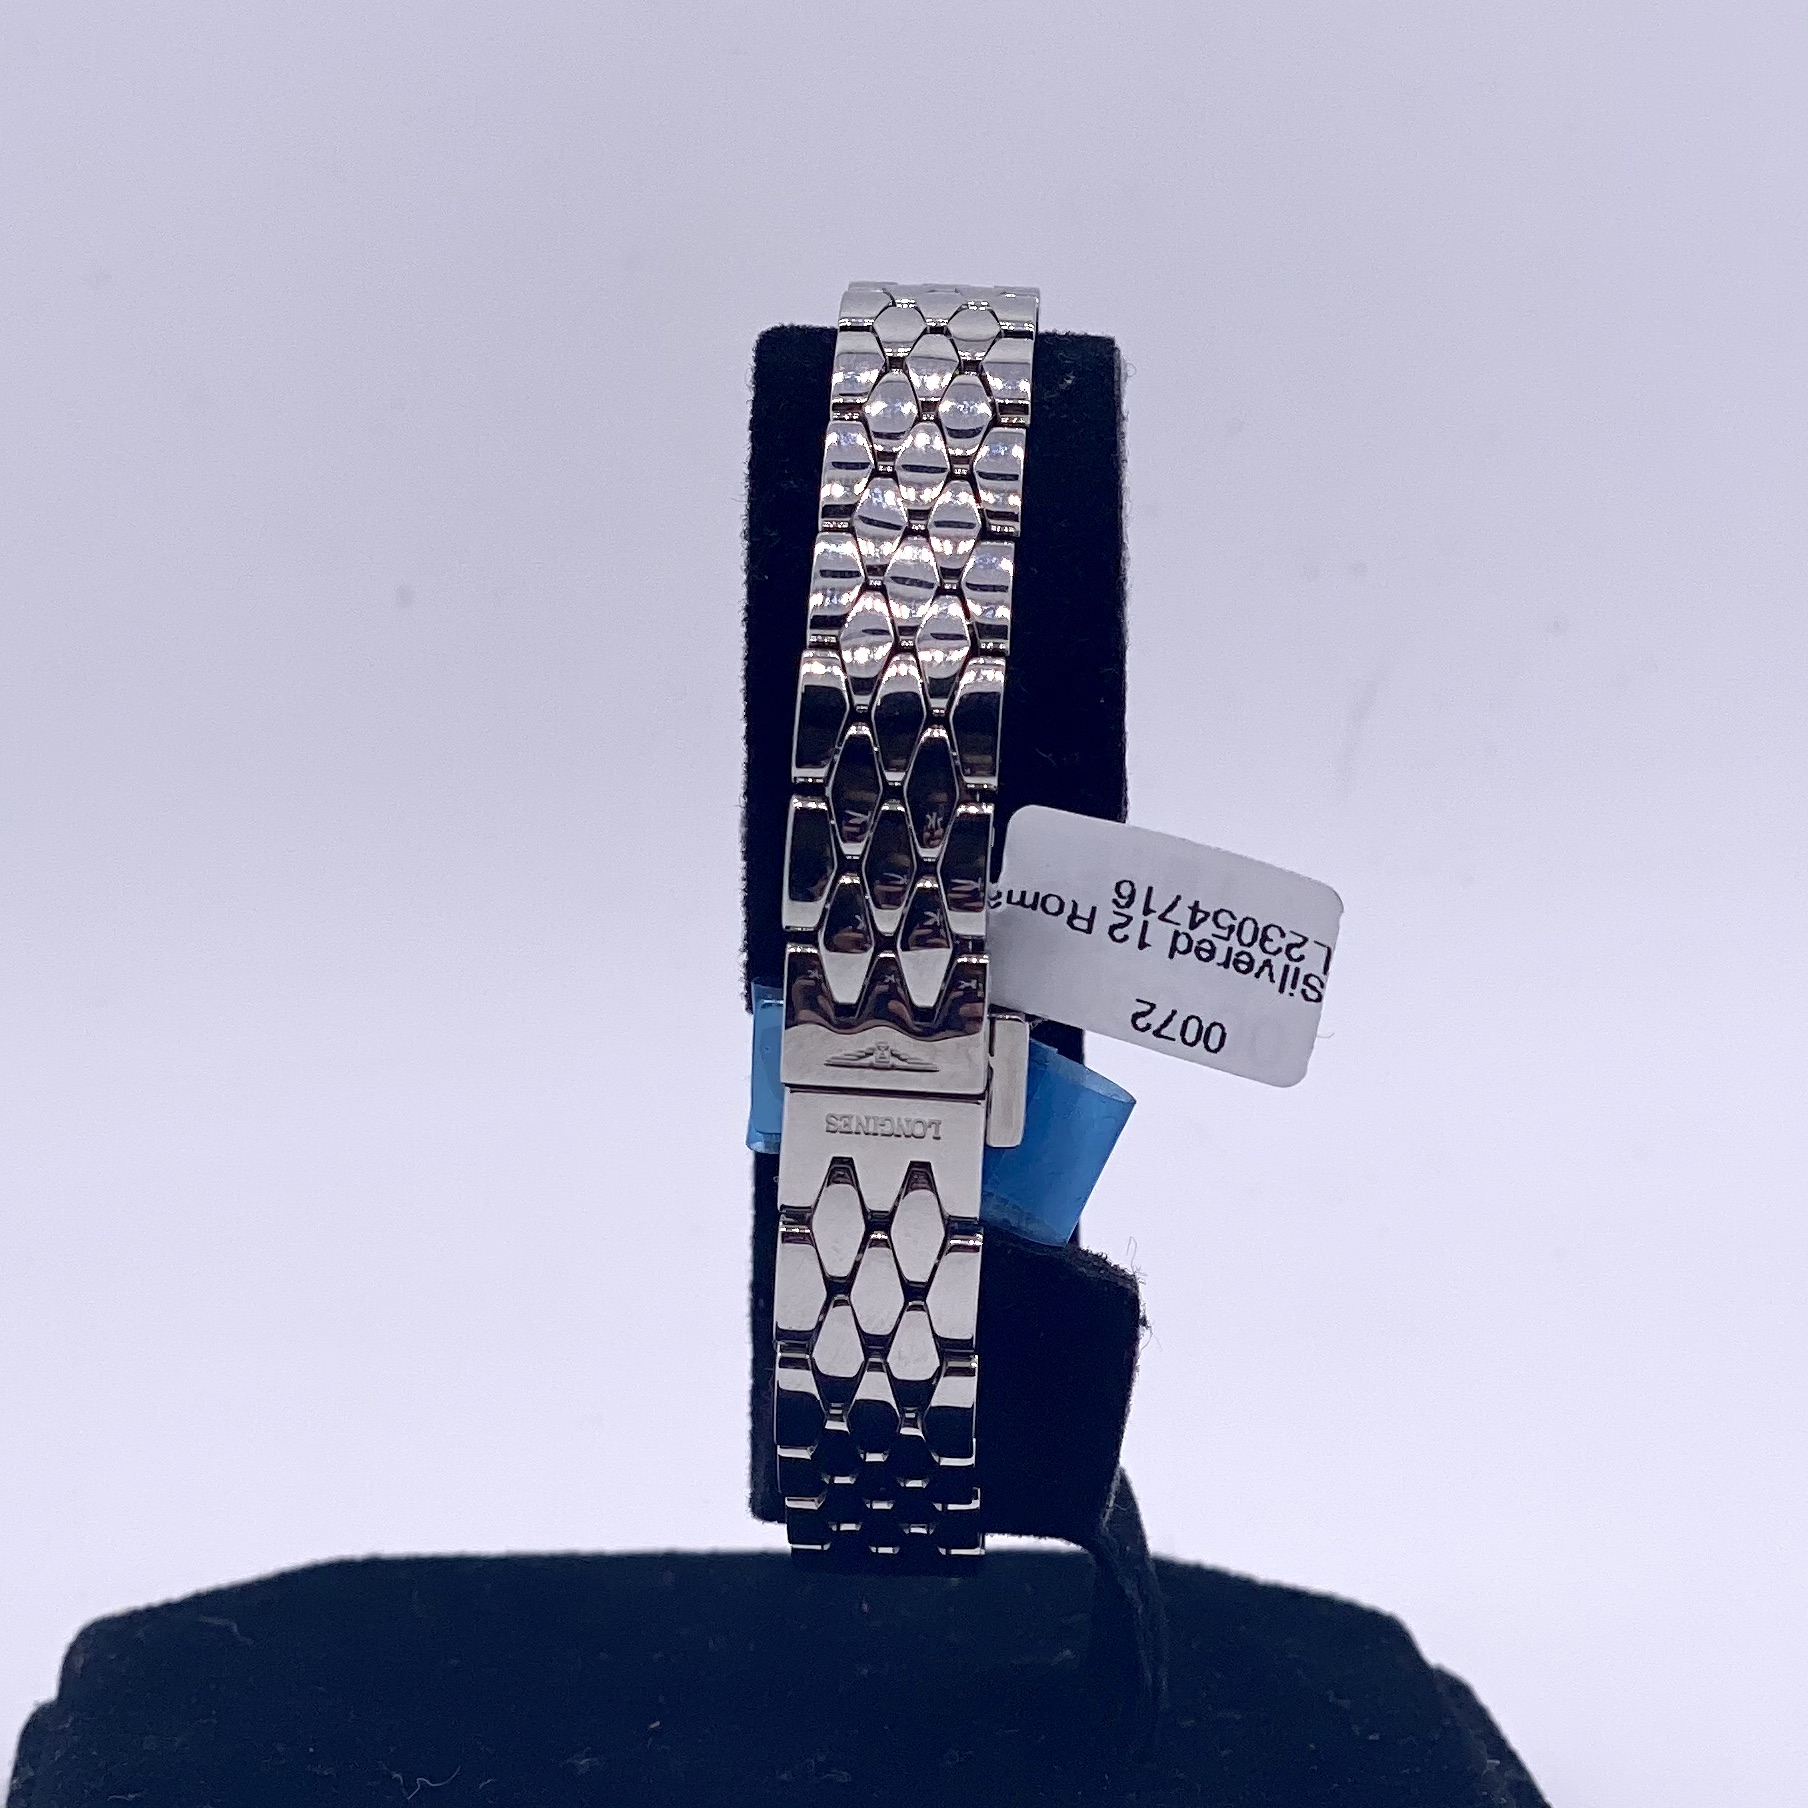 Longines Ladies Symphonette Watch ref L23054716 - Image 3 of 3